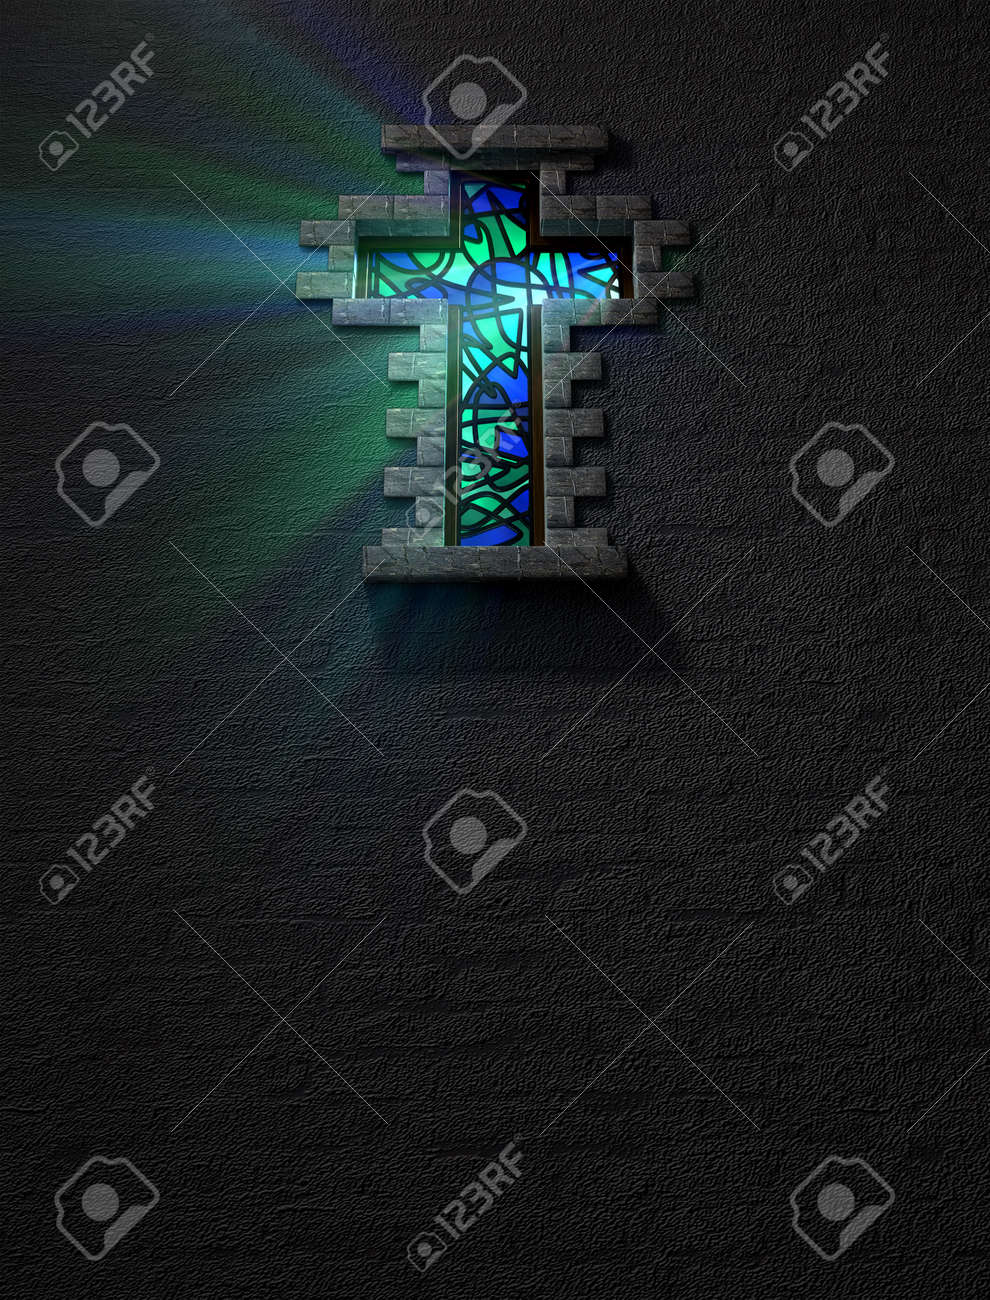 A blue and green patterned stain glass window in the shape of a crucifix with a spotlight shining through it Stock Photo - 17948415